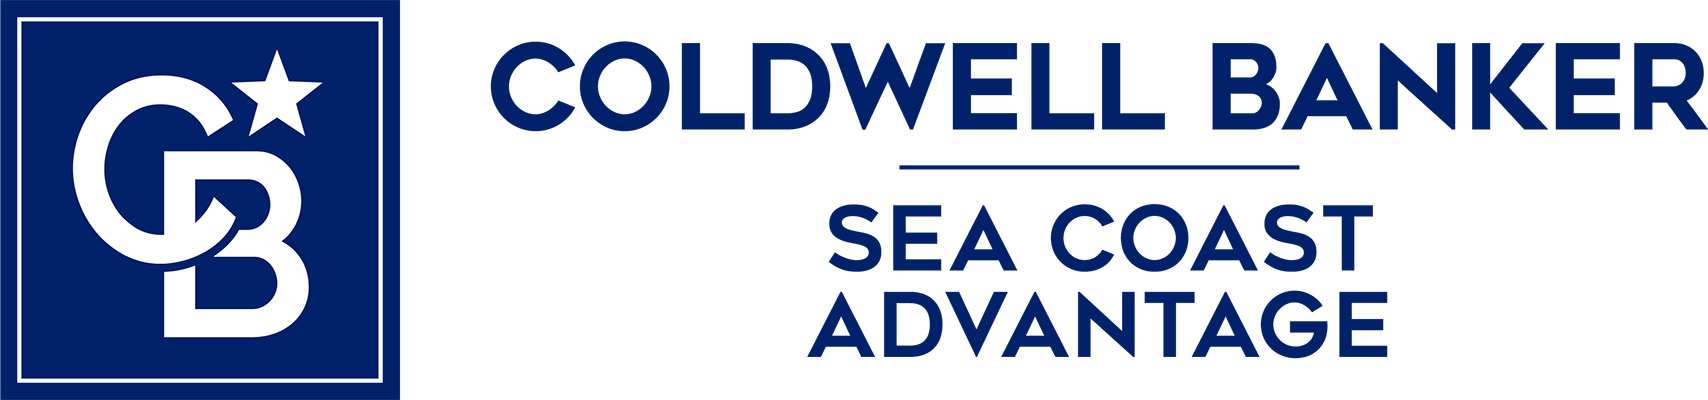 Jill Hope - Coldwell Banker Sea Coast Advantage Realty Logo